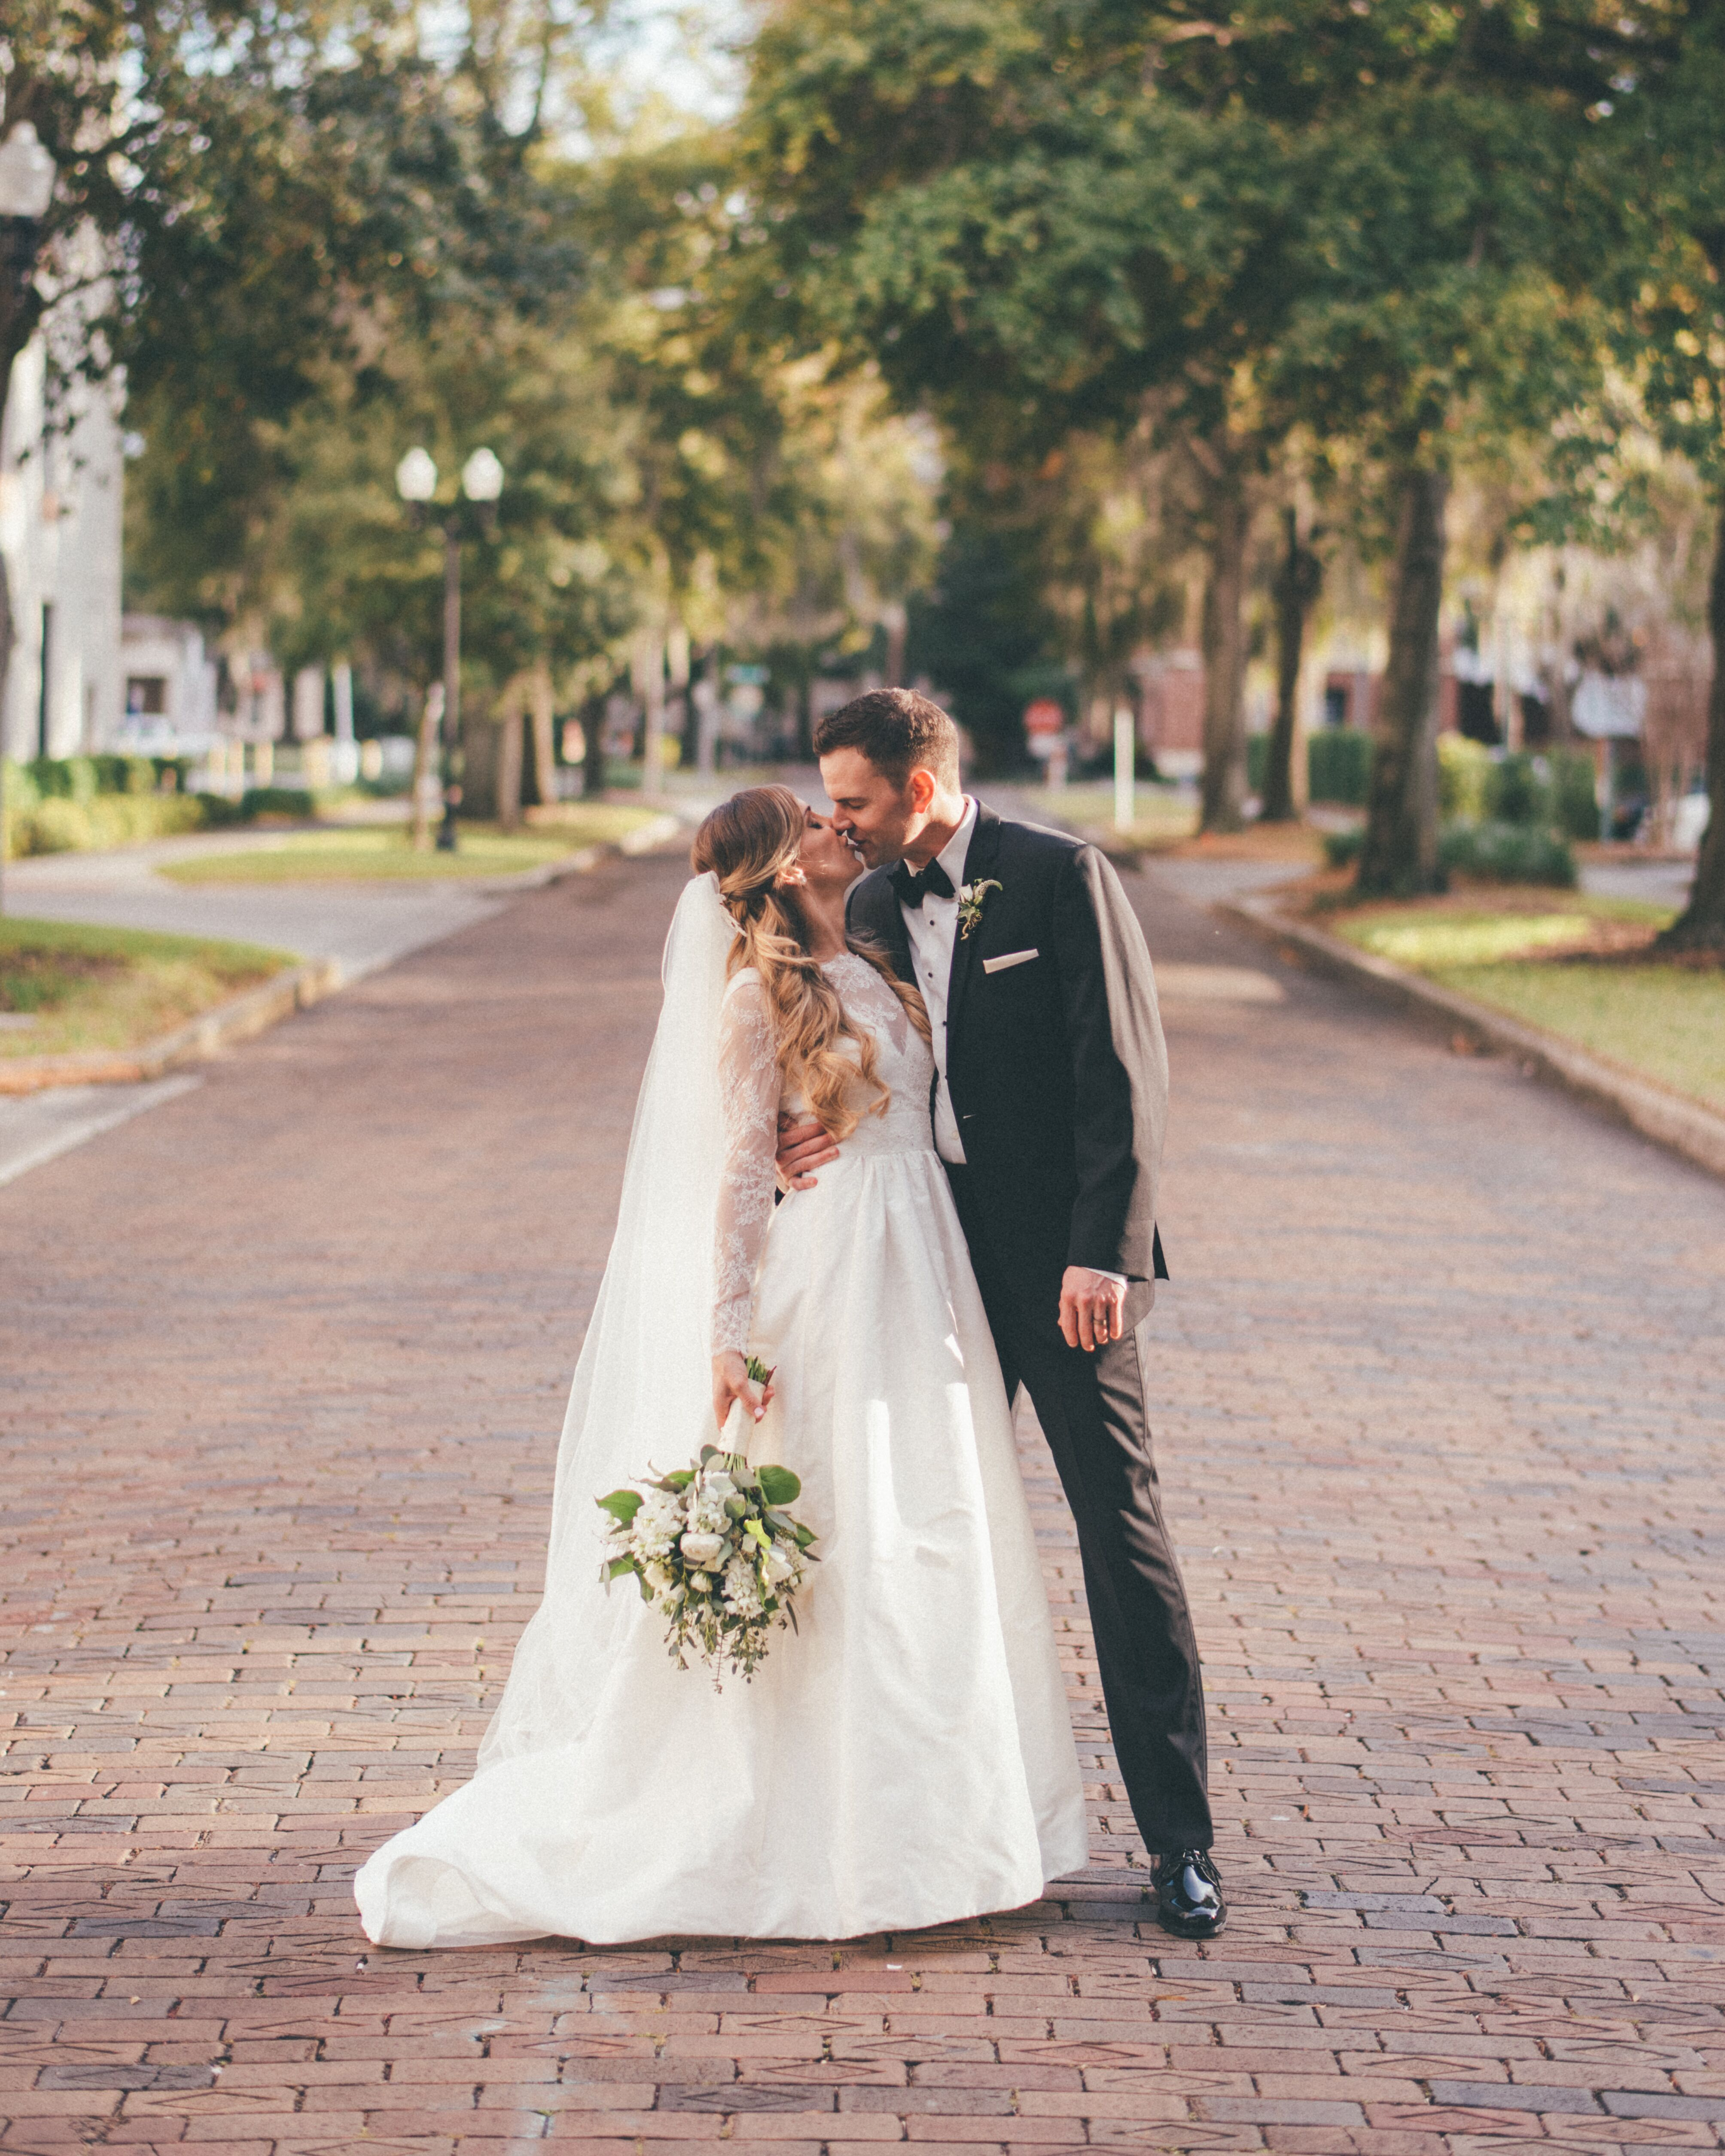 A Glamorous Wedding At Quantum Leap Winery In Orlando, Florida